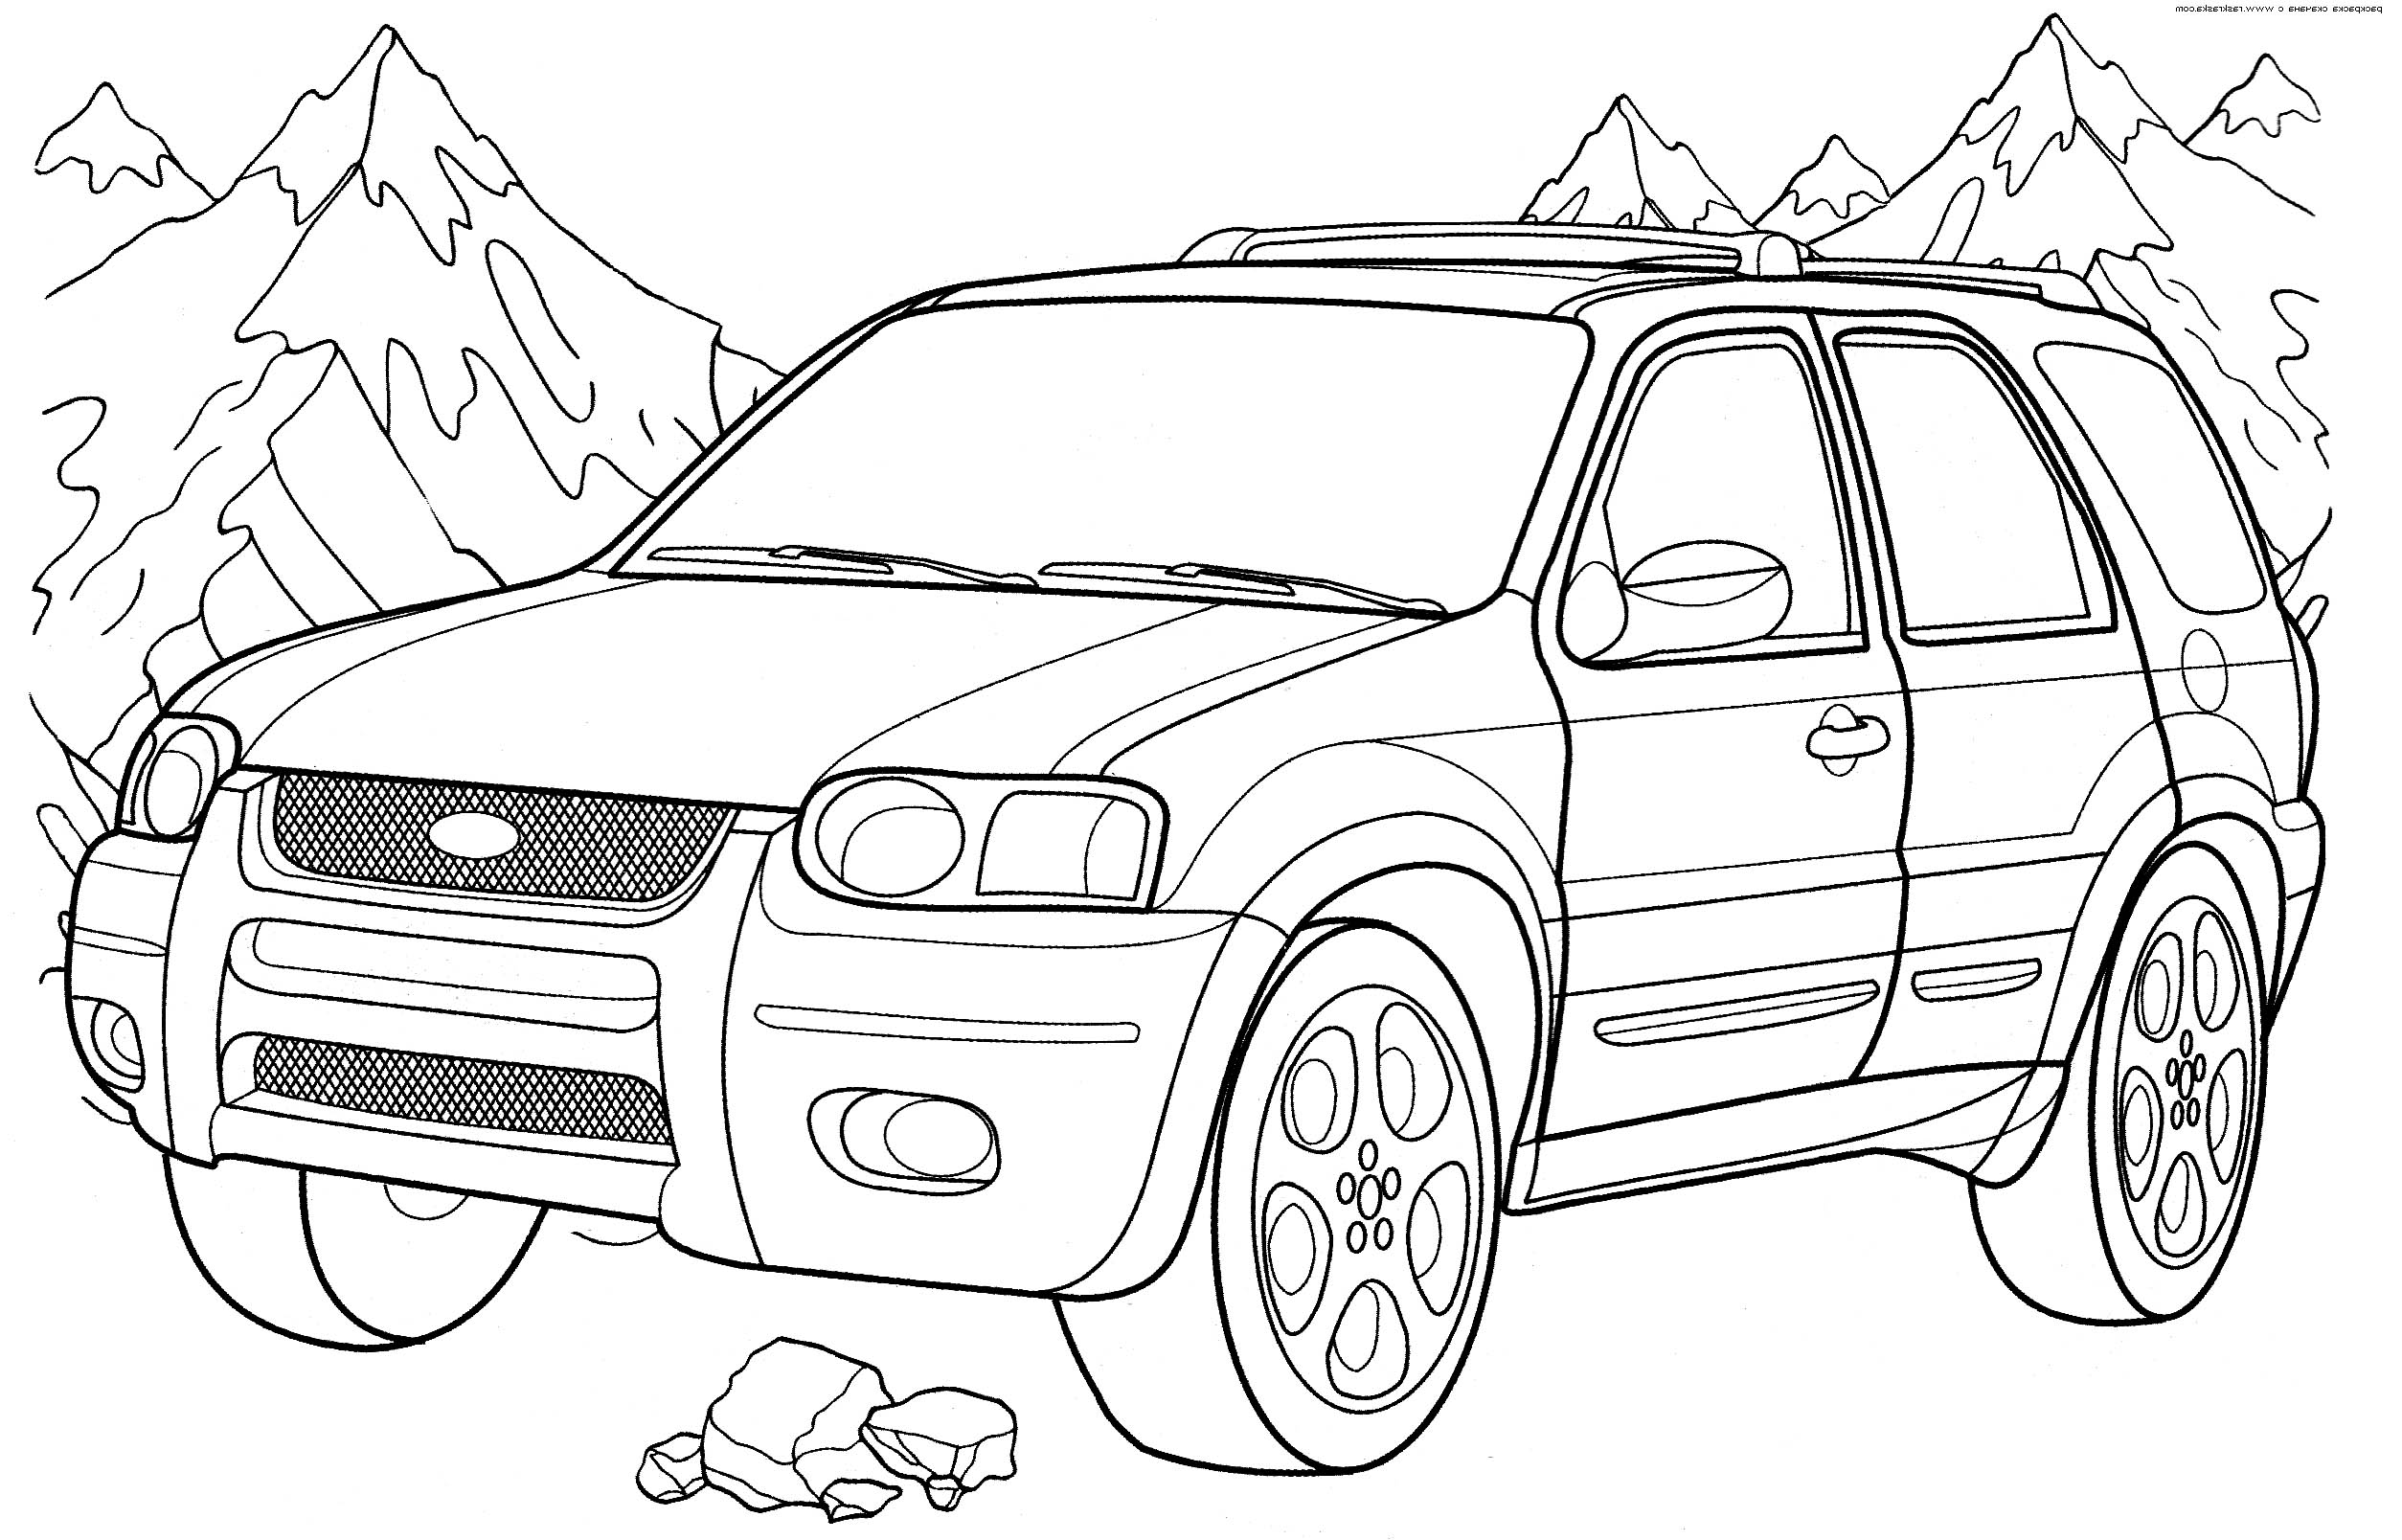 colouring in pictures of cars 4 disney cars free printable coloring pages cars of pictures in colouring